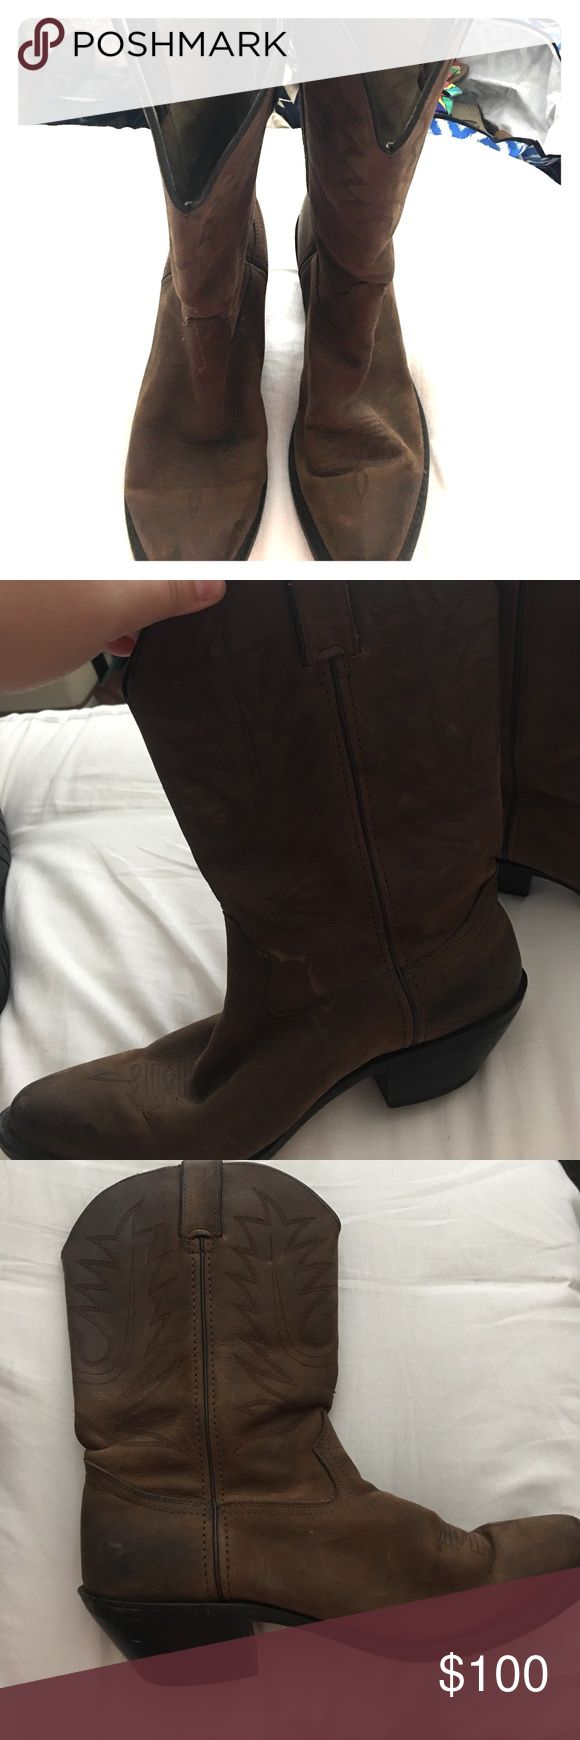 Durango Cowboy Boots Worn, very nice cowboy boots!! These have been loved, have a couple of scuffs but are still in great shape and are the perfect cowboy boot! I just got another pair for Christmas so find myself not needing two! Durango Shoes Heeled Boots